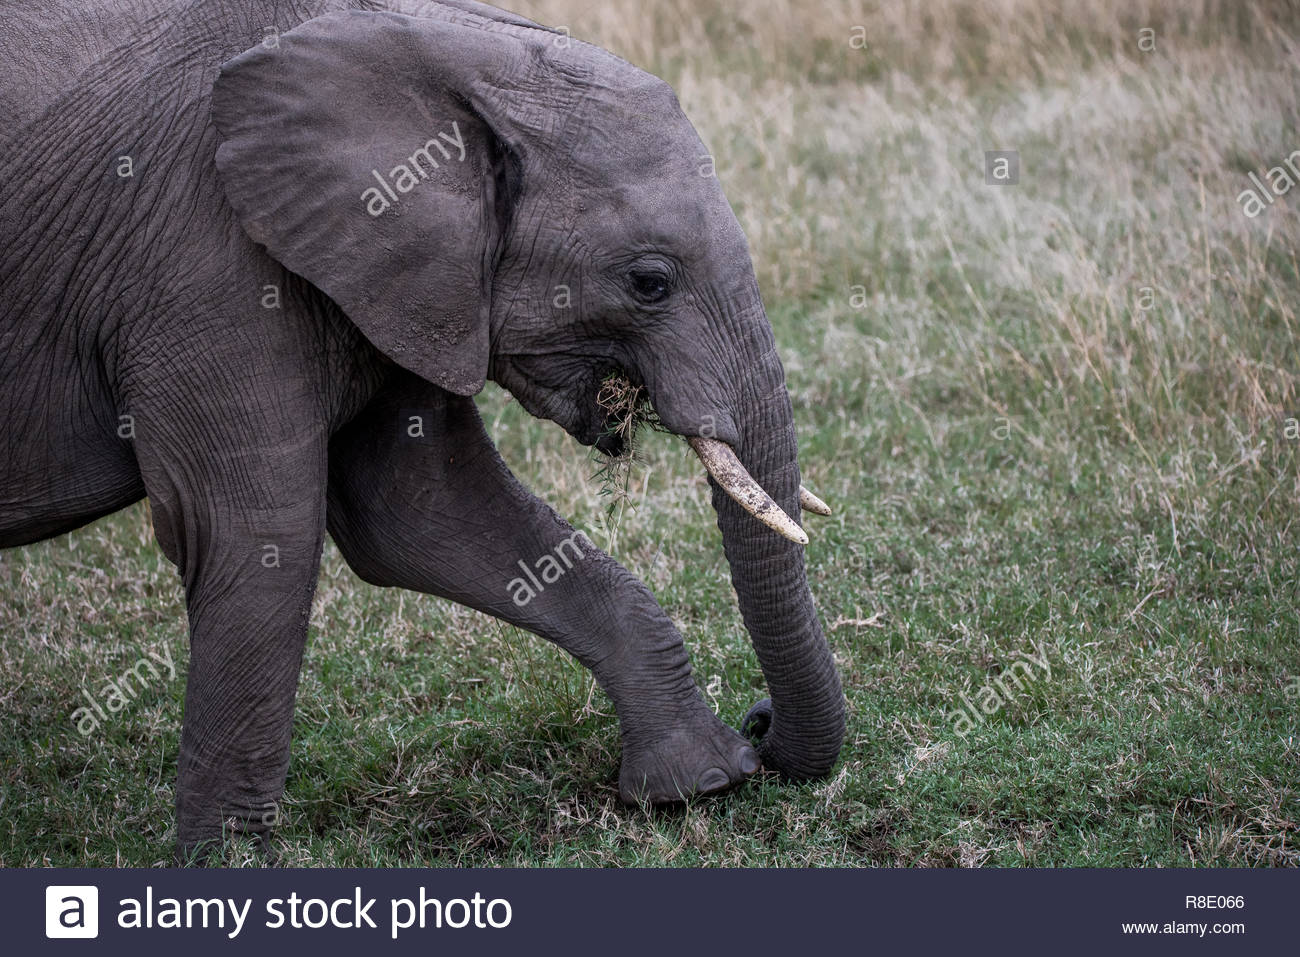 An elephant feeding using its foot to uproot grass - Stock Image